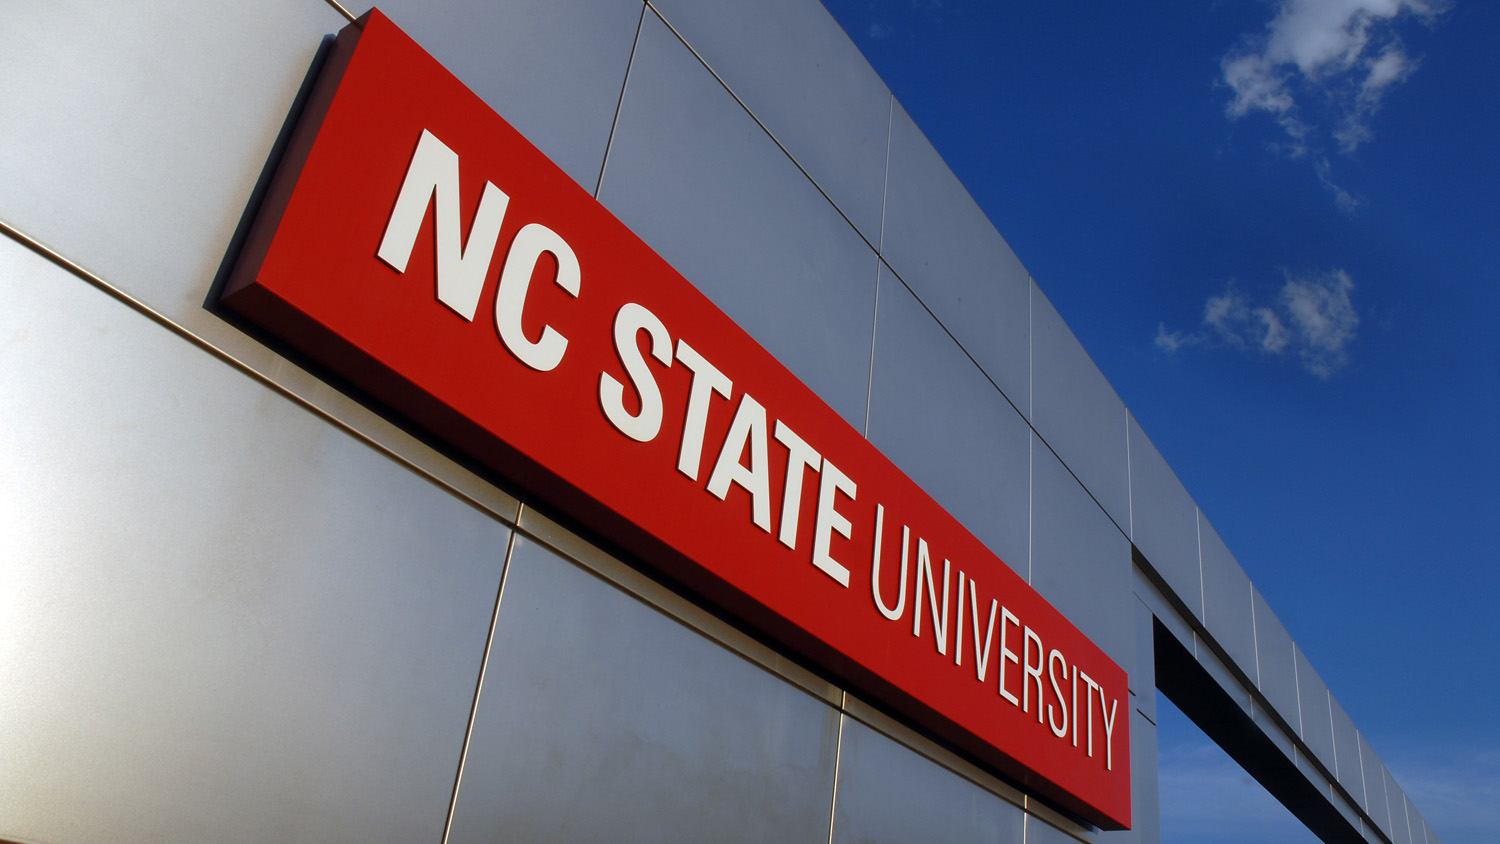 Campus gateway sign that reads NC State University